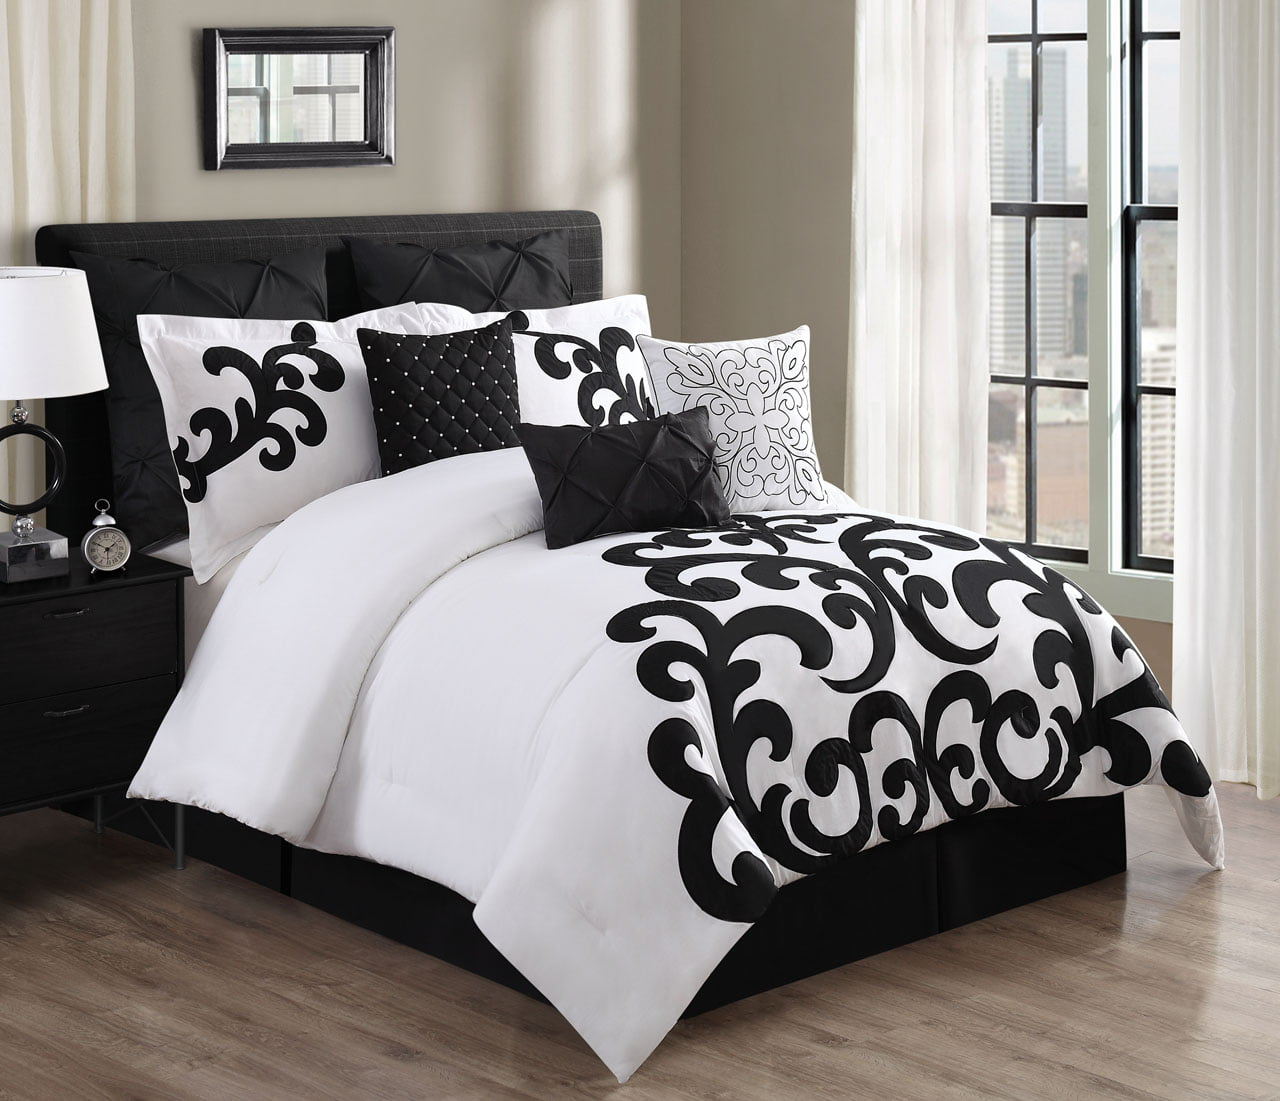 9 Piece Empress 100 Cotton Black White Comforter Set Walmart Com Walmart Com